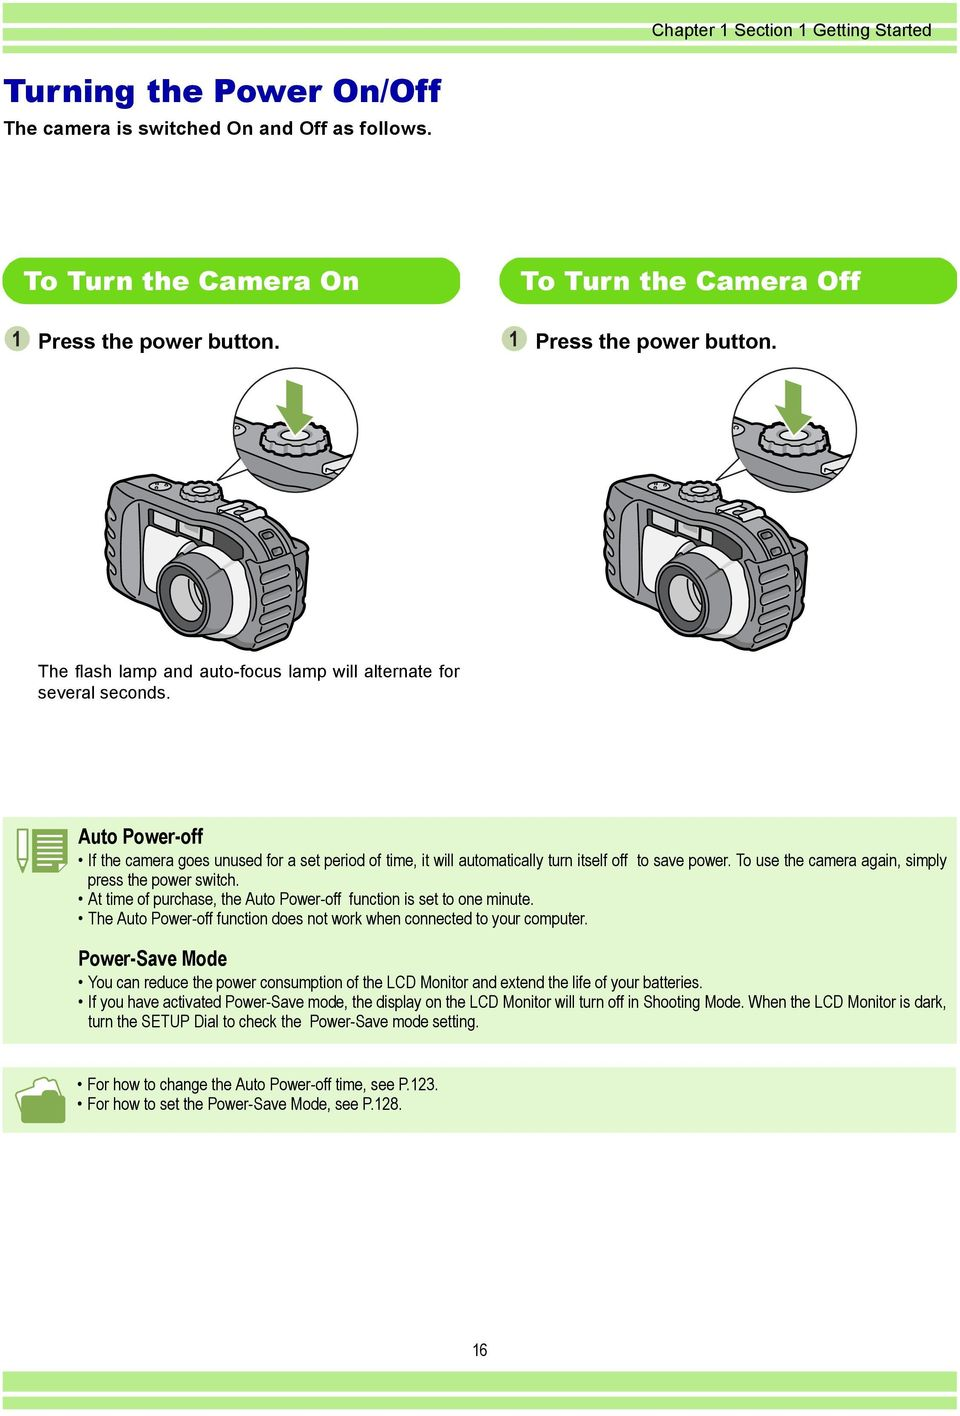 To use the camera again, simply press the power switch. At time of purchase, the Auto Power-off function is set to one minute.